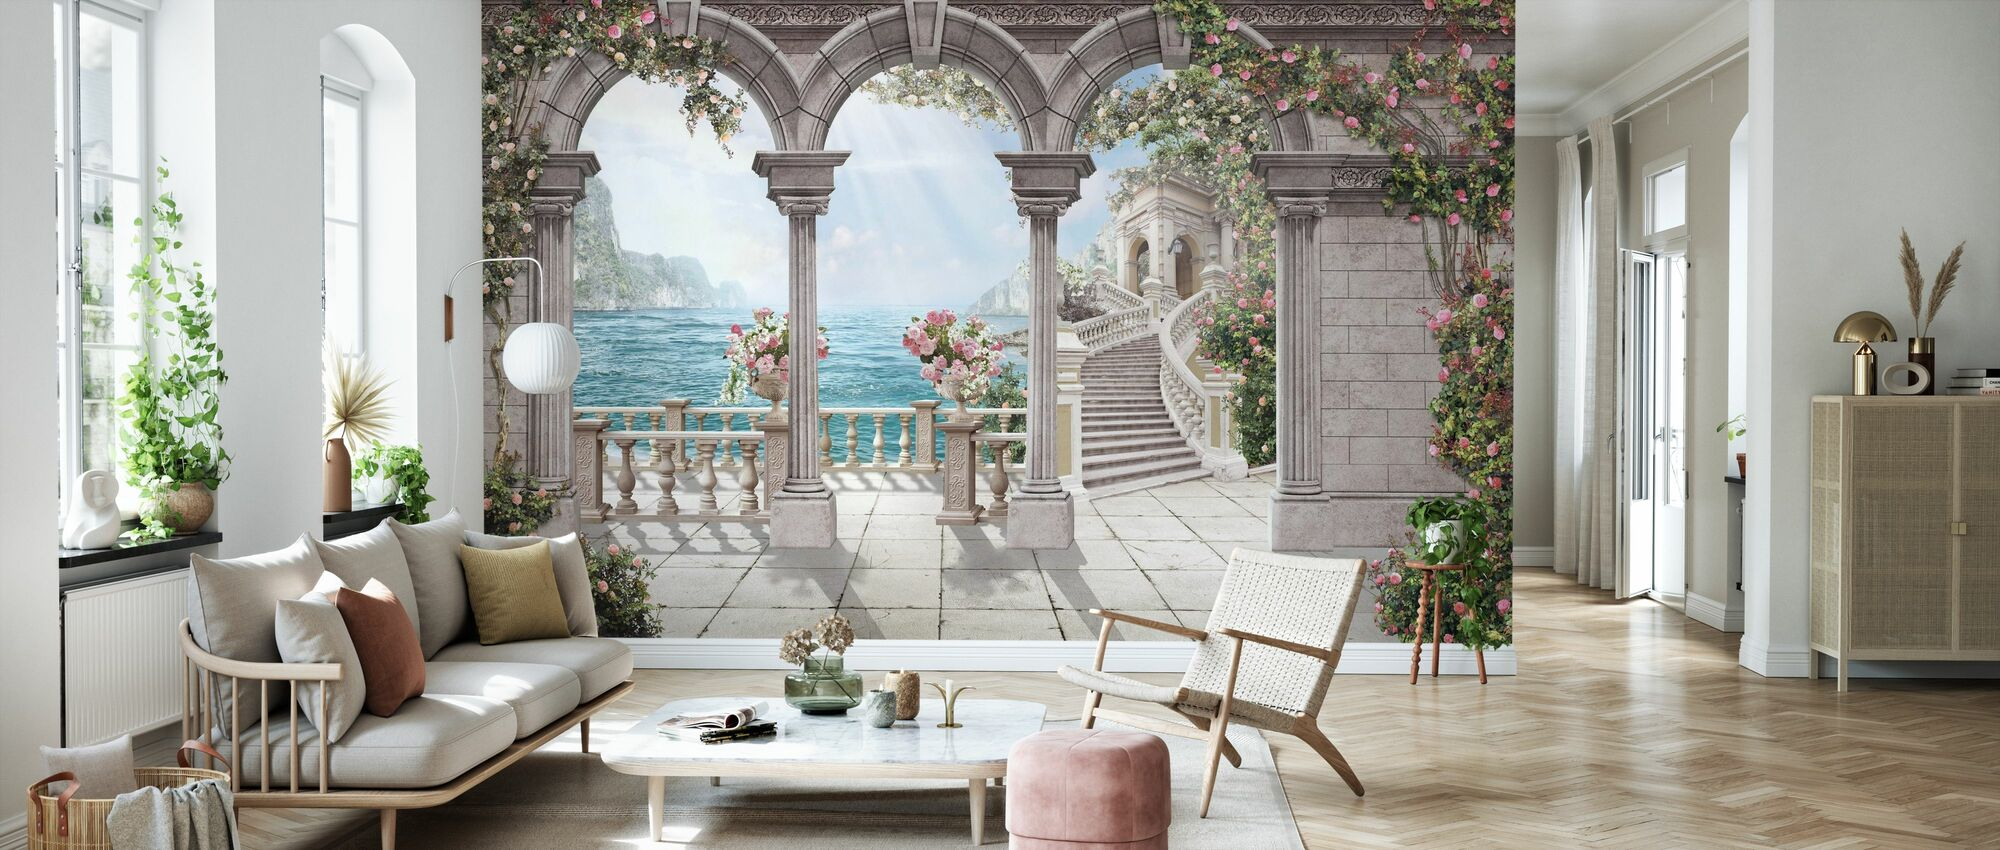 Antique Patio - Wallpaper - Living Room